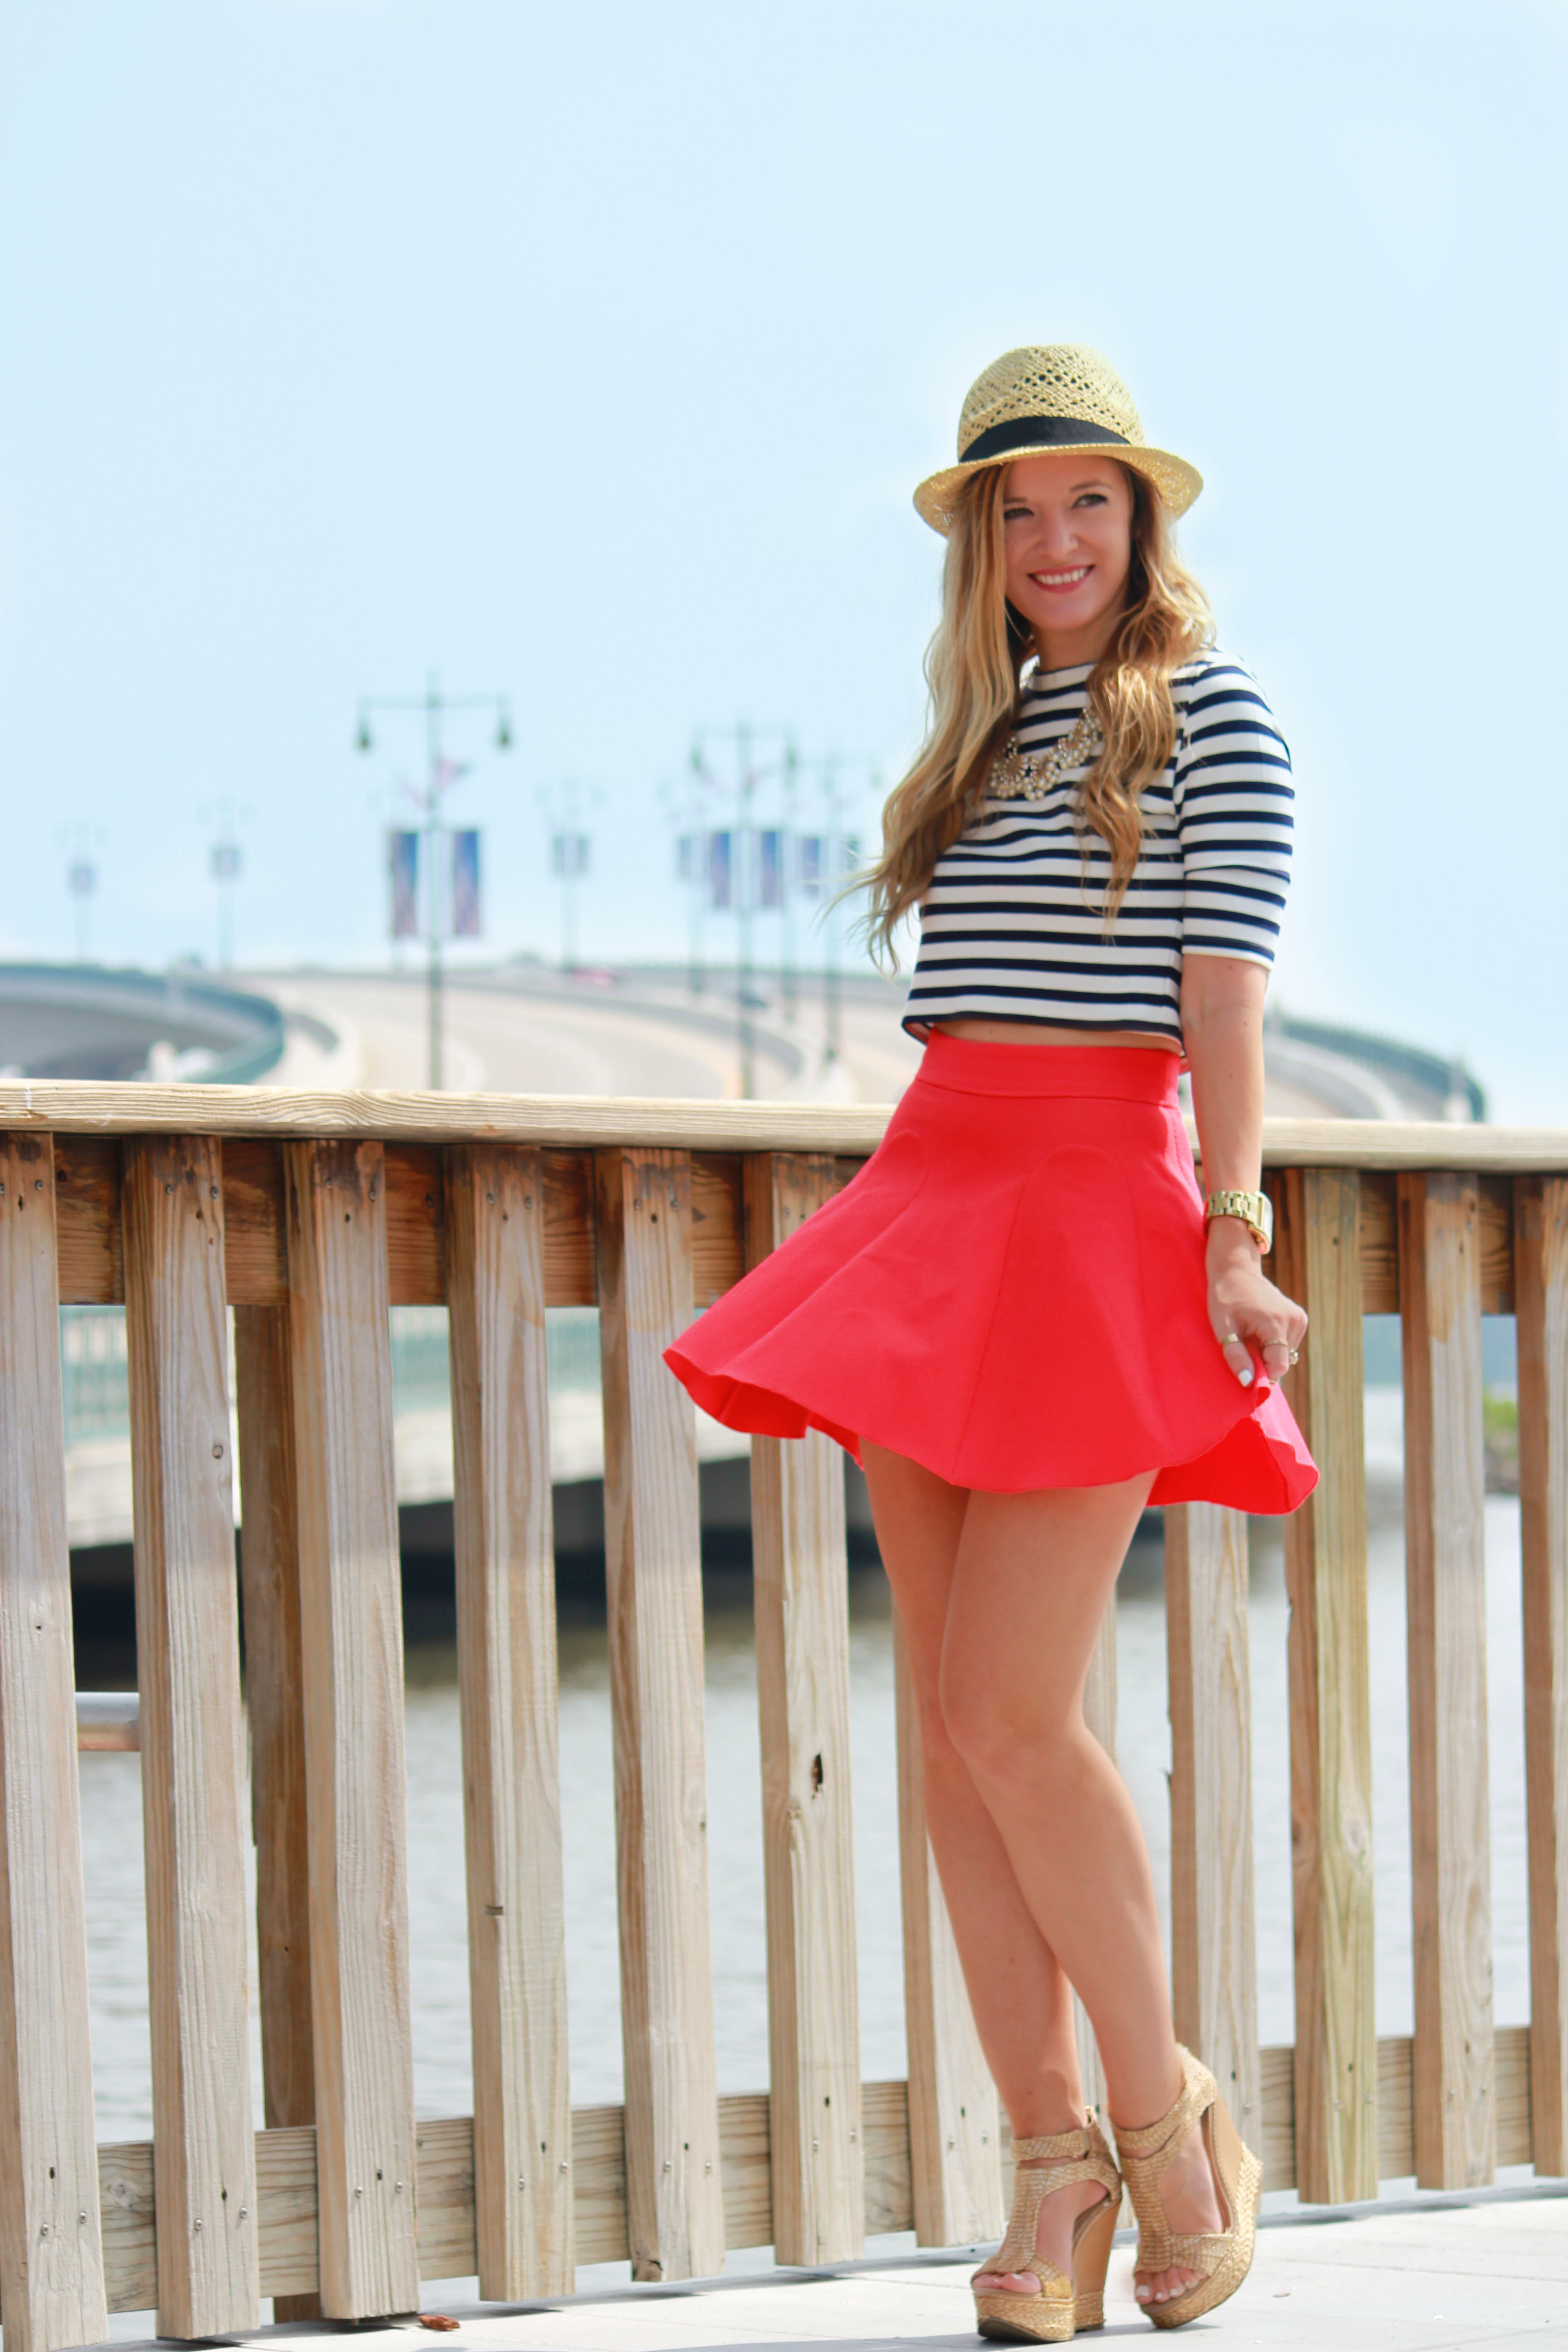 h&m crop top, h&m skirt, h&m fedora, red white and blue outfit, patriotic outfit, summer outfit